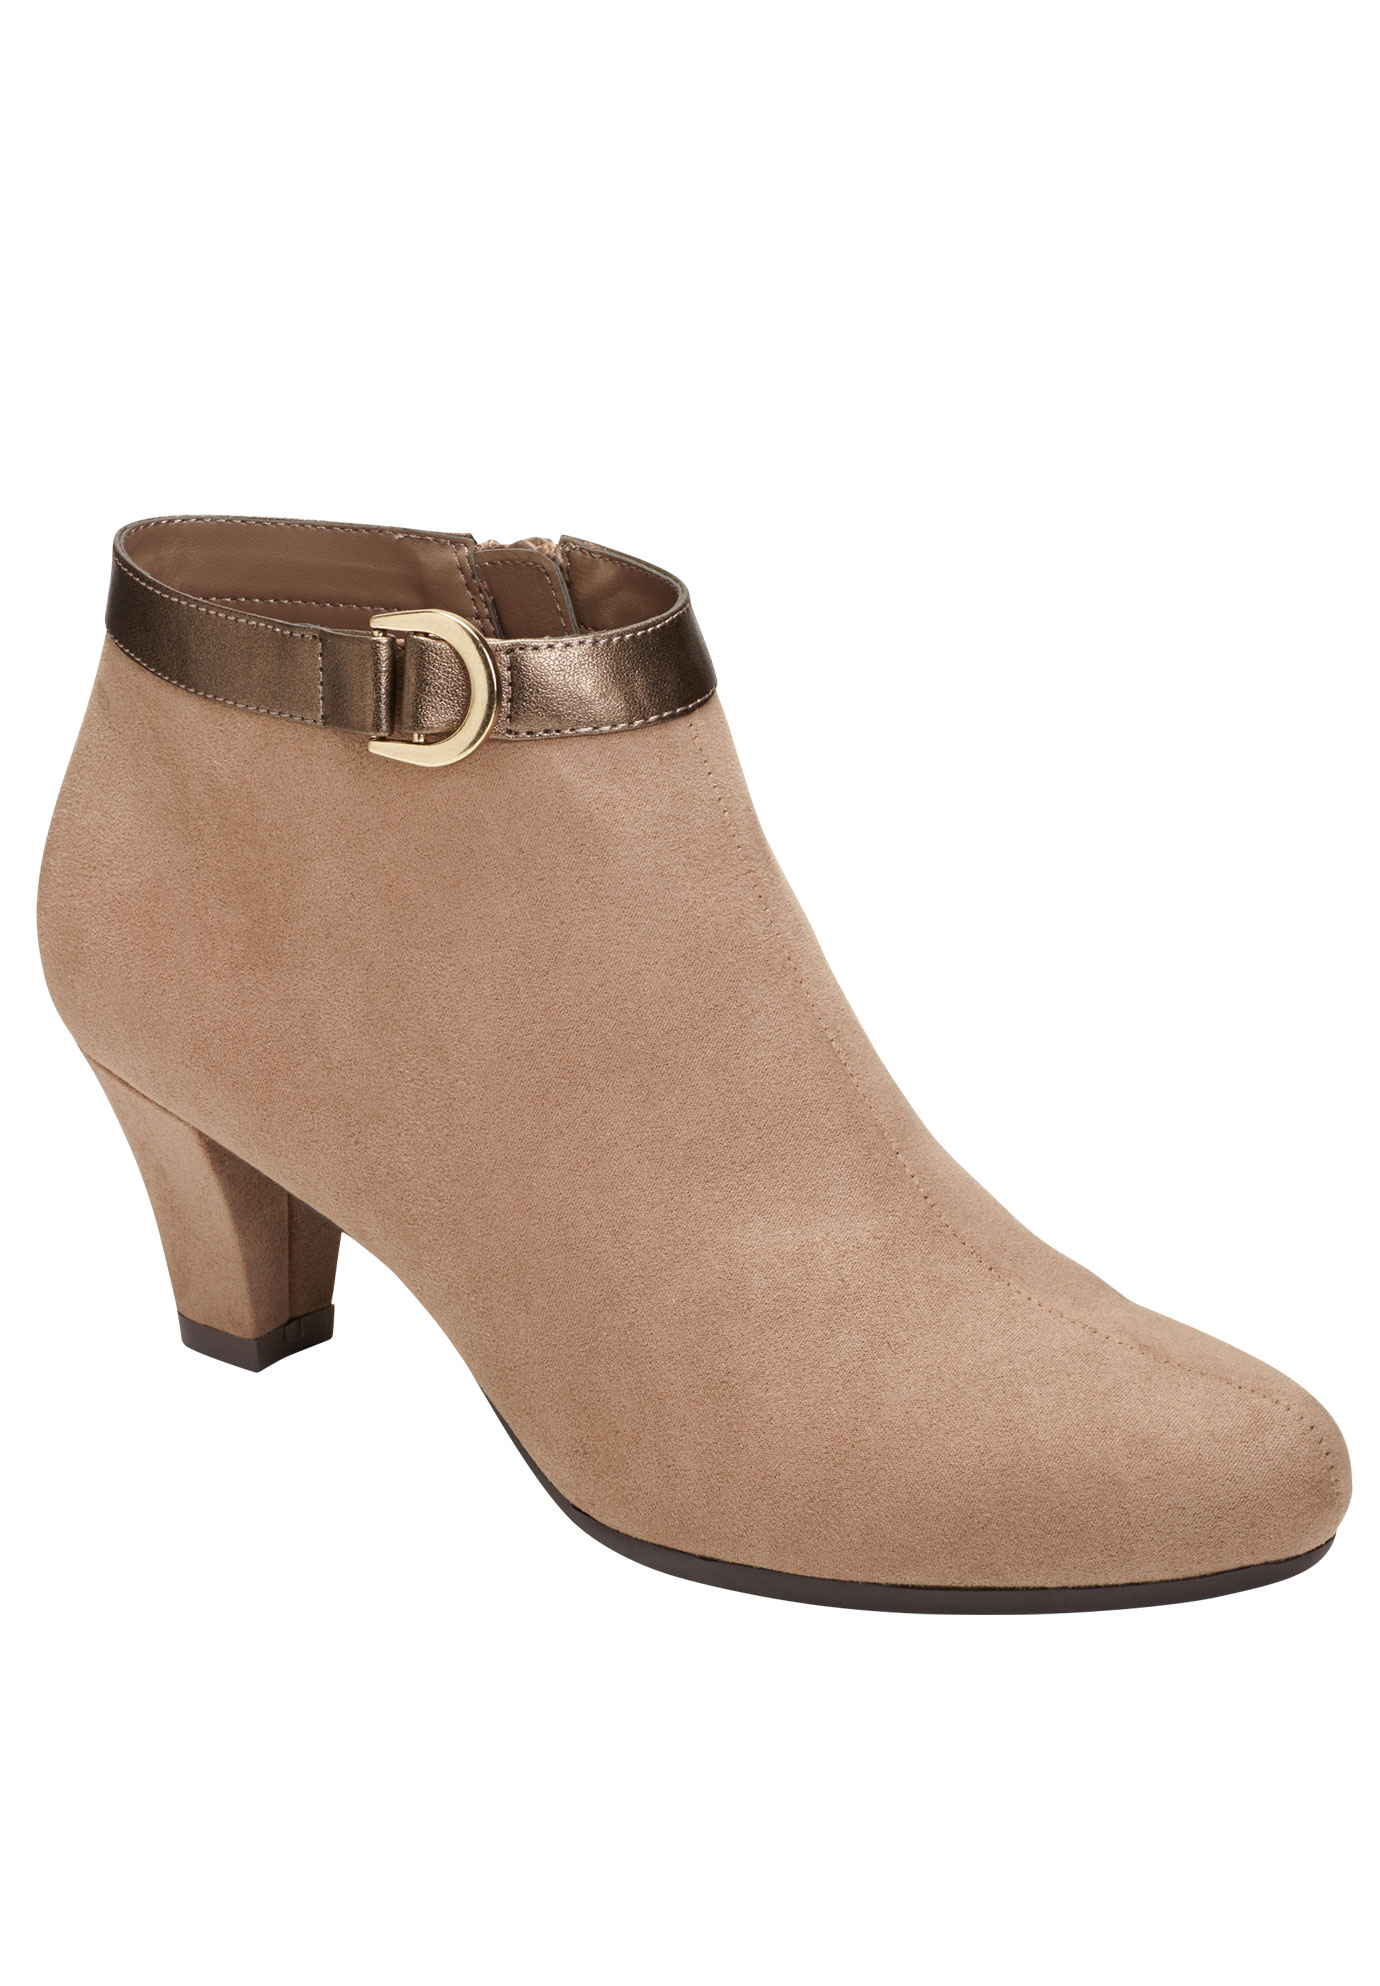 A2 by Aerosoles Shore Enough Bootie bWUpy1TtV